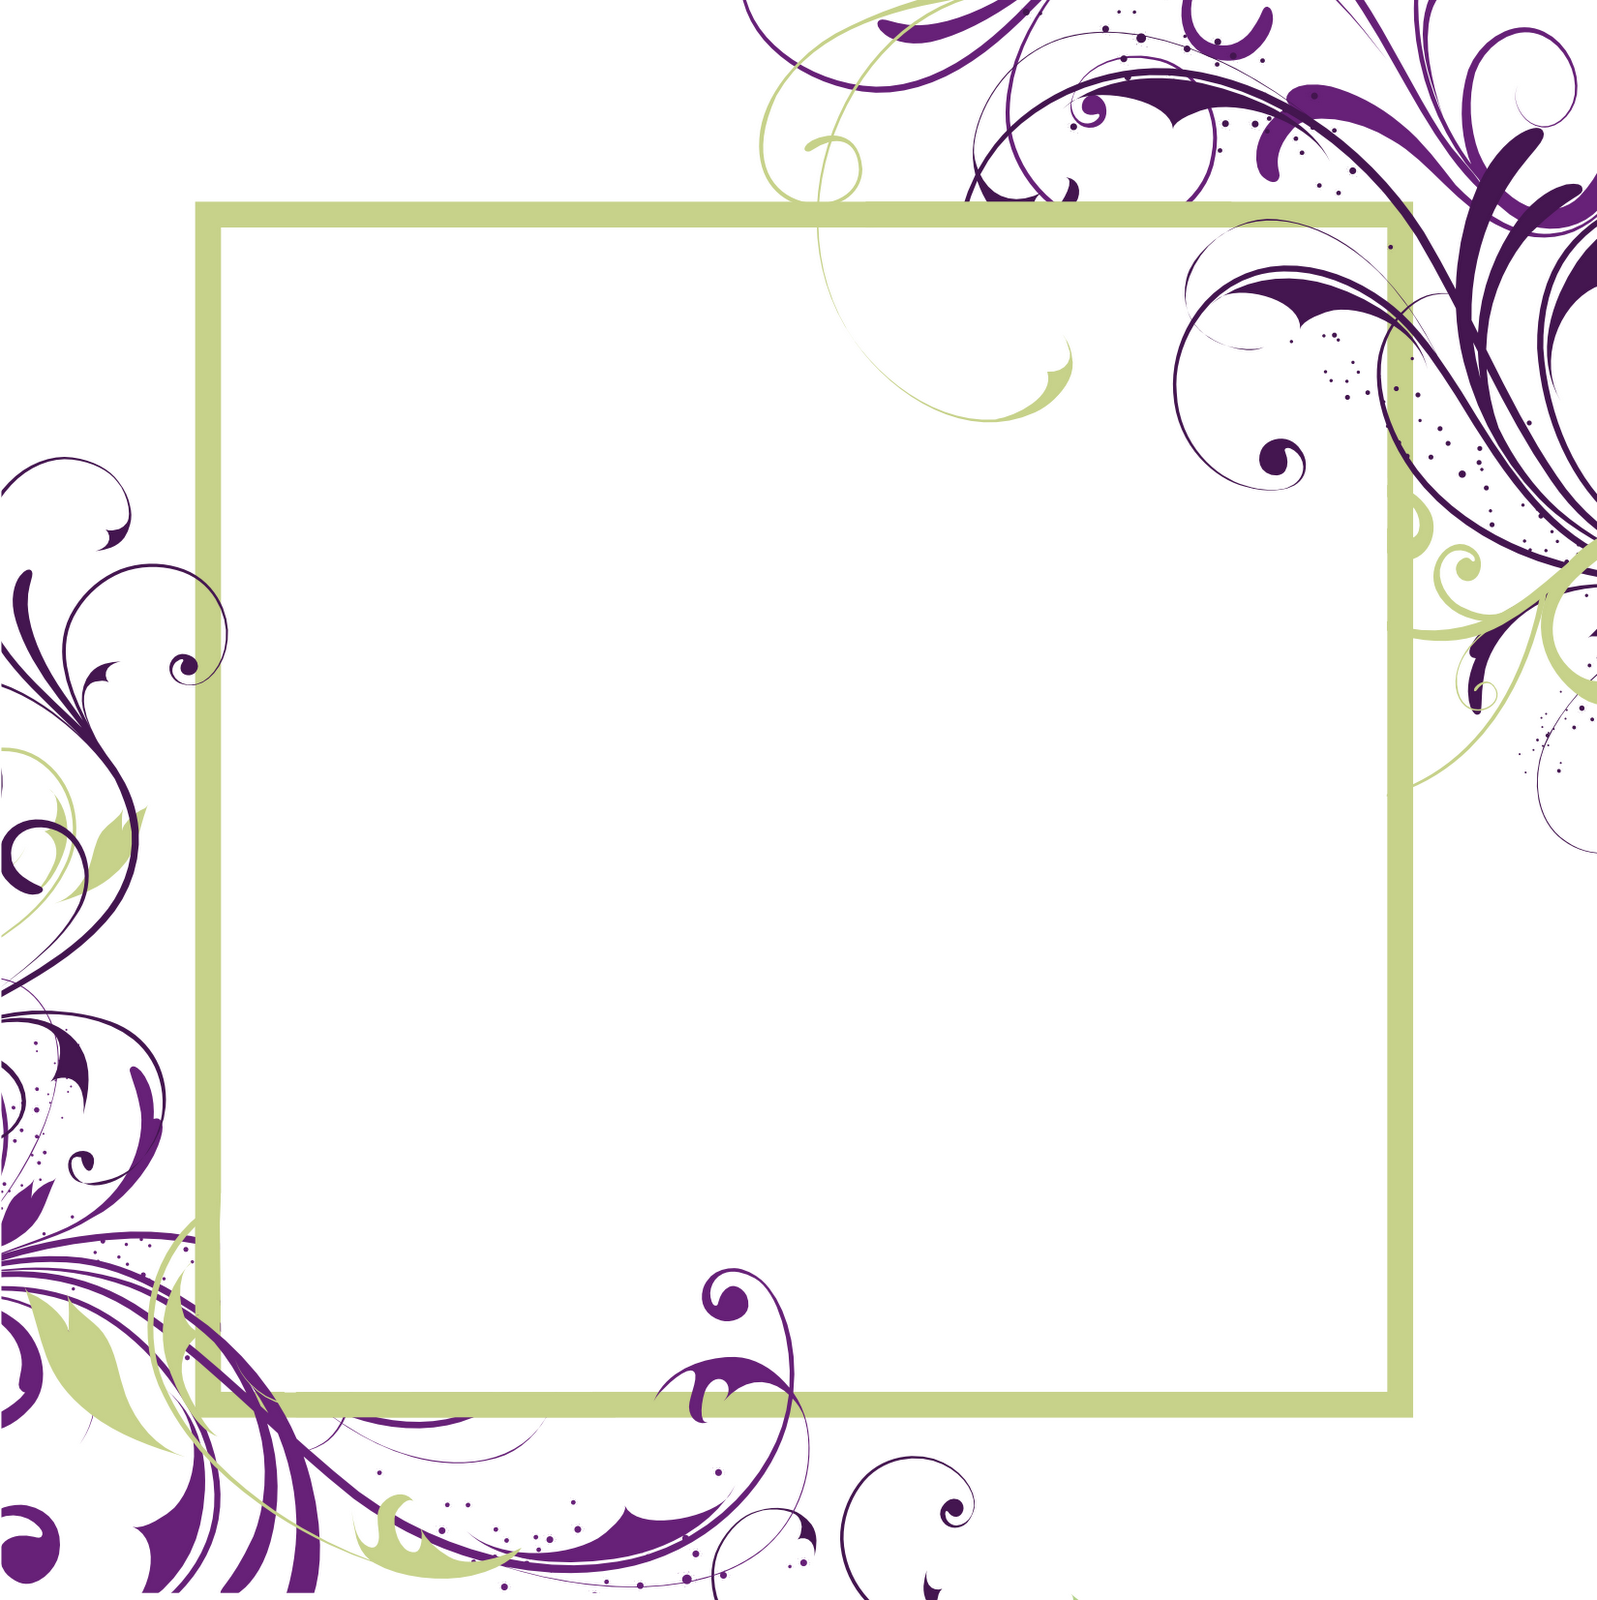 Design Templates For Invitations Png 3 Png Image